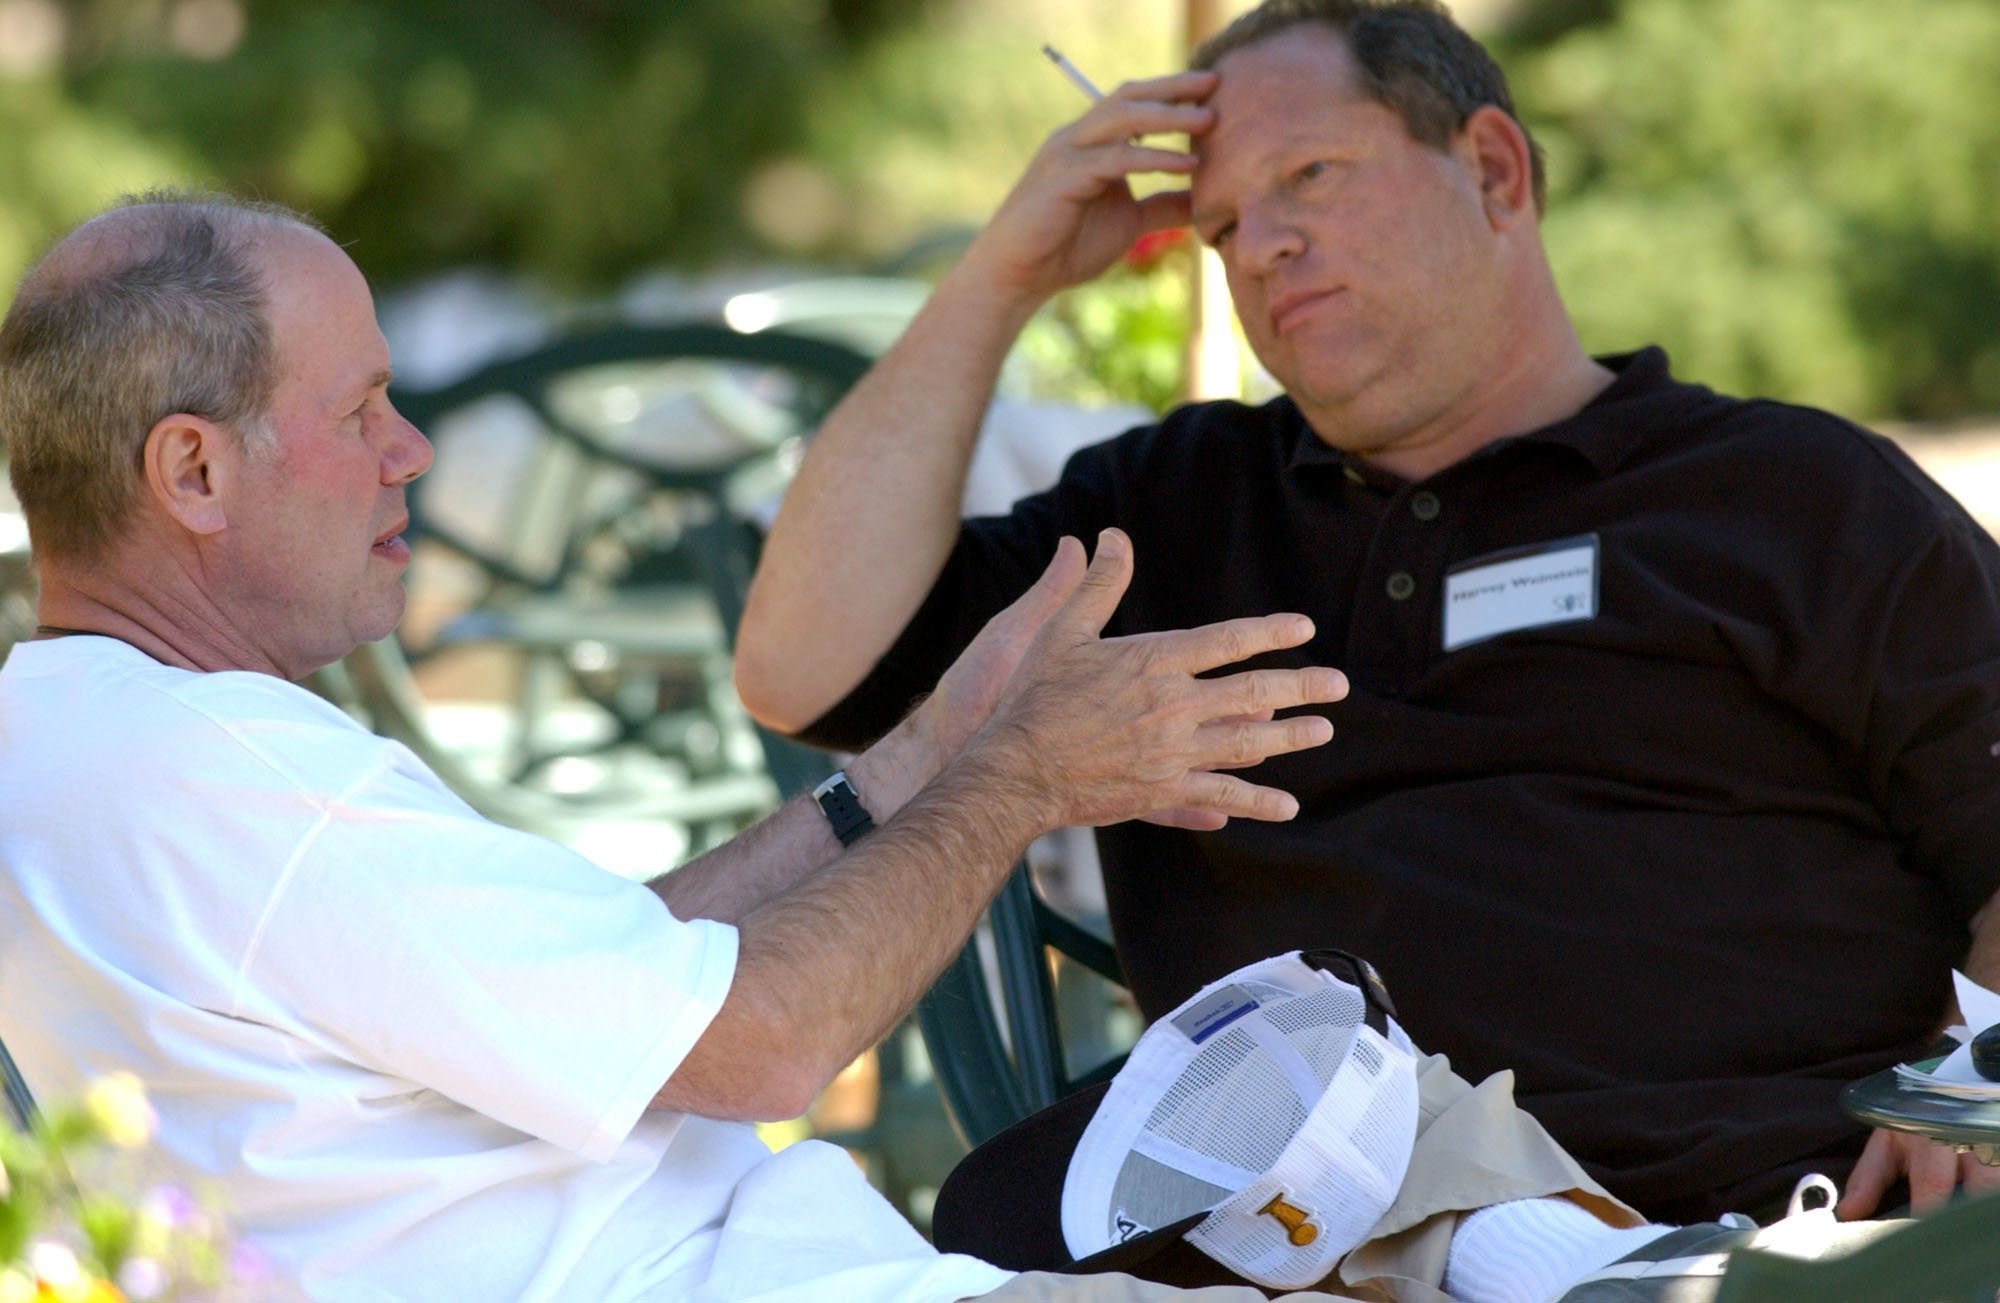 UNITED STATES - JULY 08:  Walt Disney Co. CEO Michael D. Eisner, left, talks with Miramax Film Corp. Co-Chairman Harvey Weinstein on the grounds of the Sun Vally resort during the Allen & CO conference in Sun Valley, Idaho, Thursday, July 8, 2004.  (Photo by Matthew Staver/Bloomberg via Getty Images)